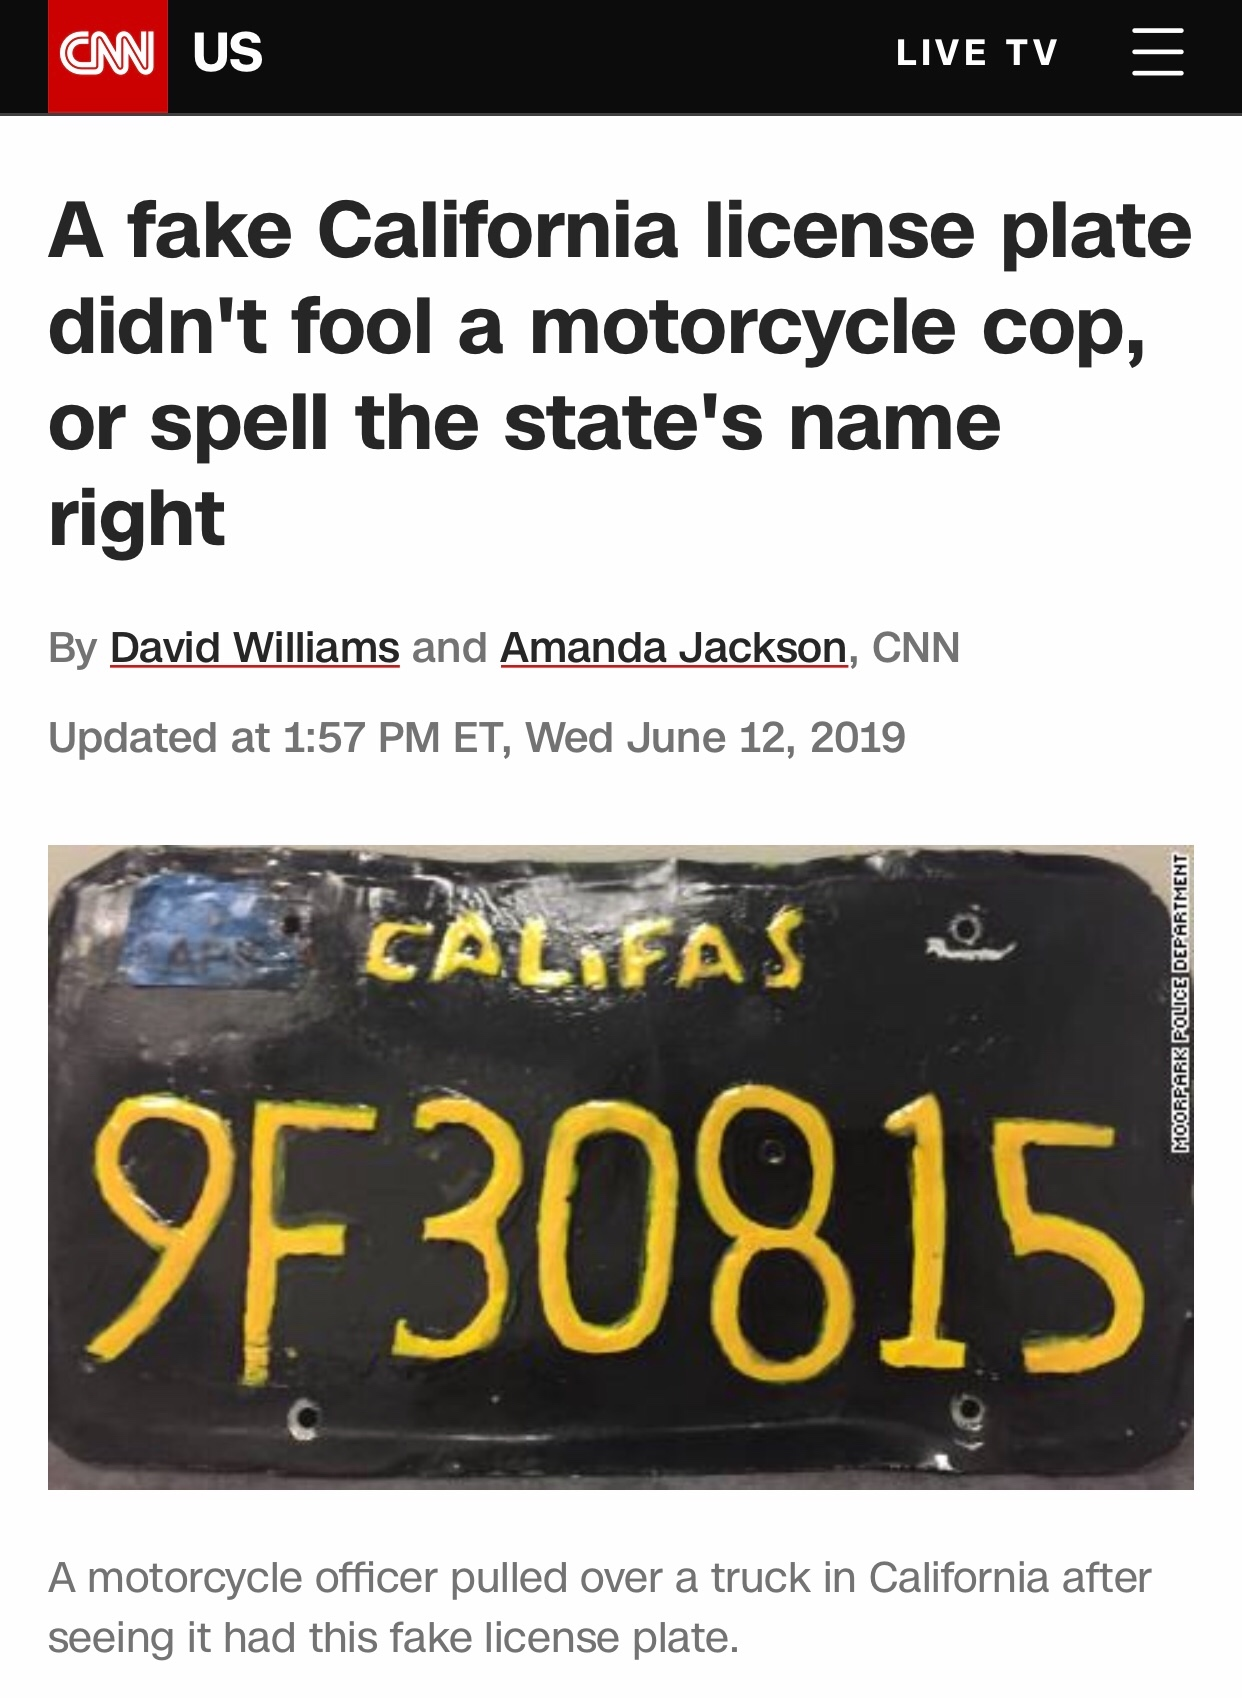 Originally sourced from CNN news article, David Williams and Amanda Jackson